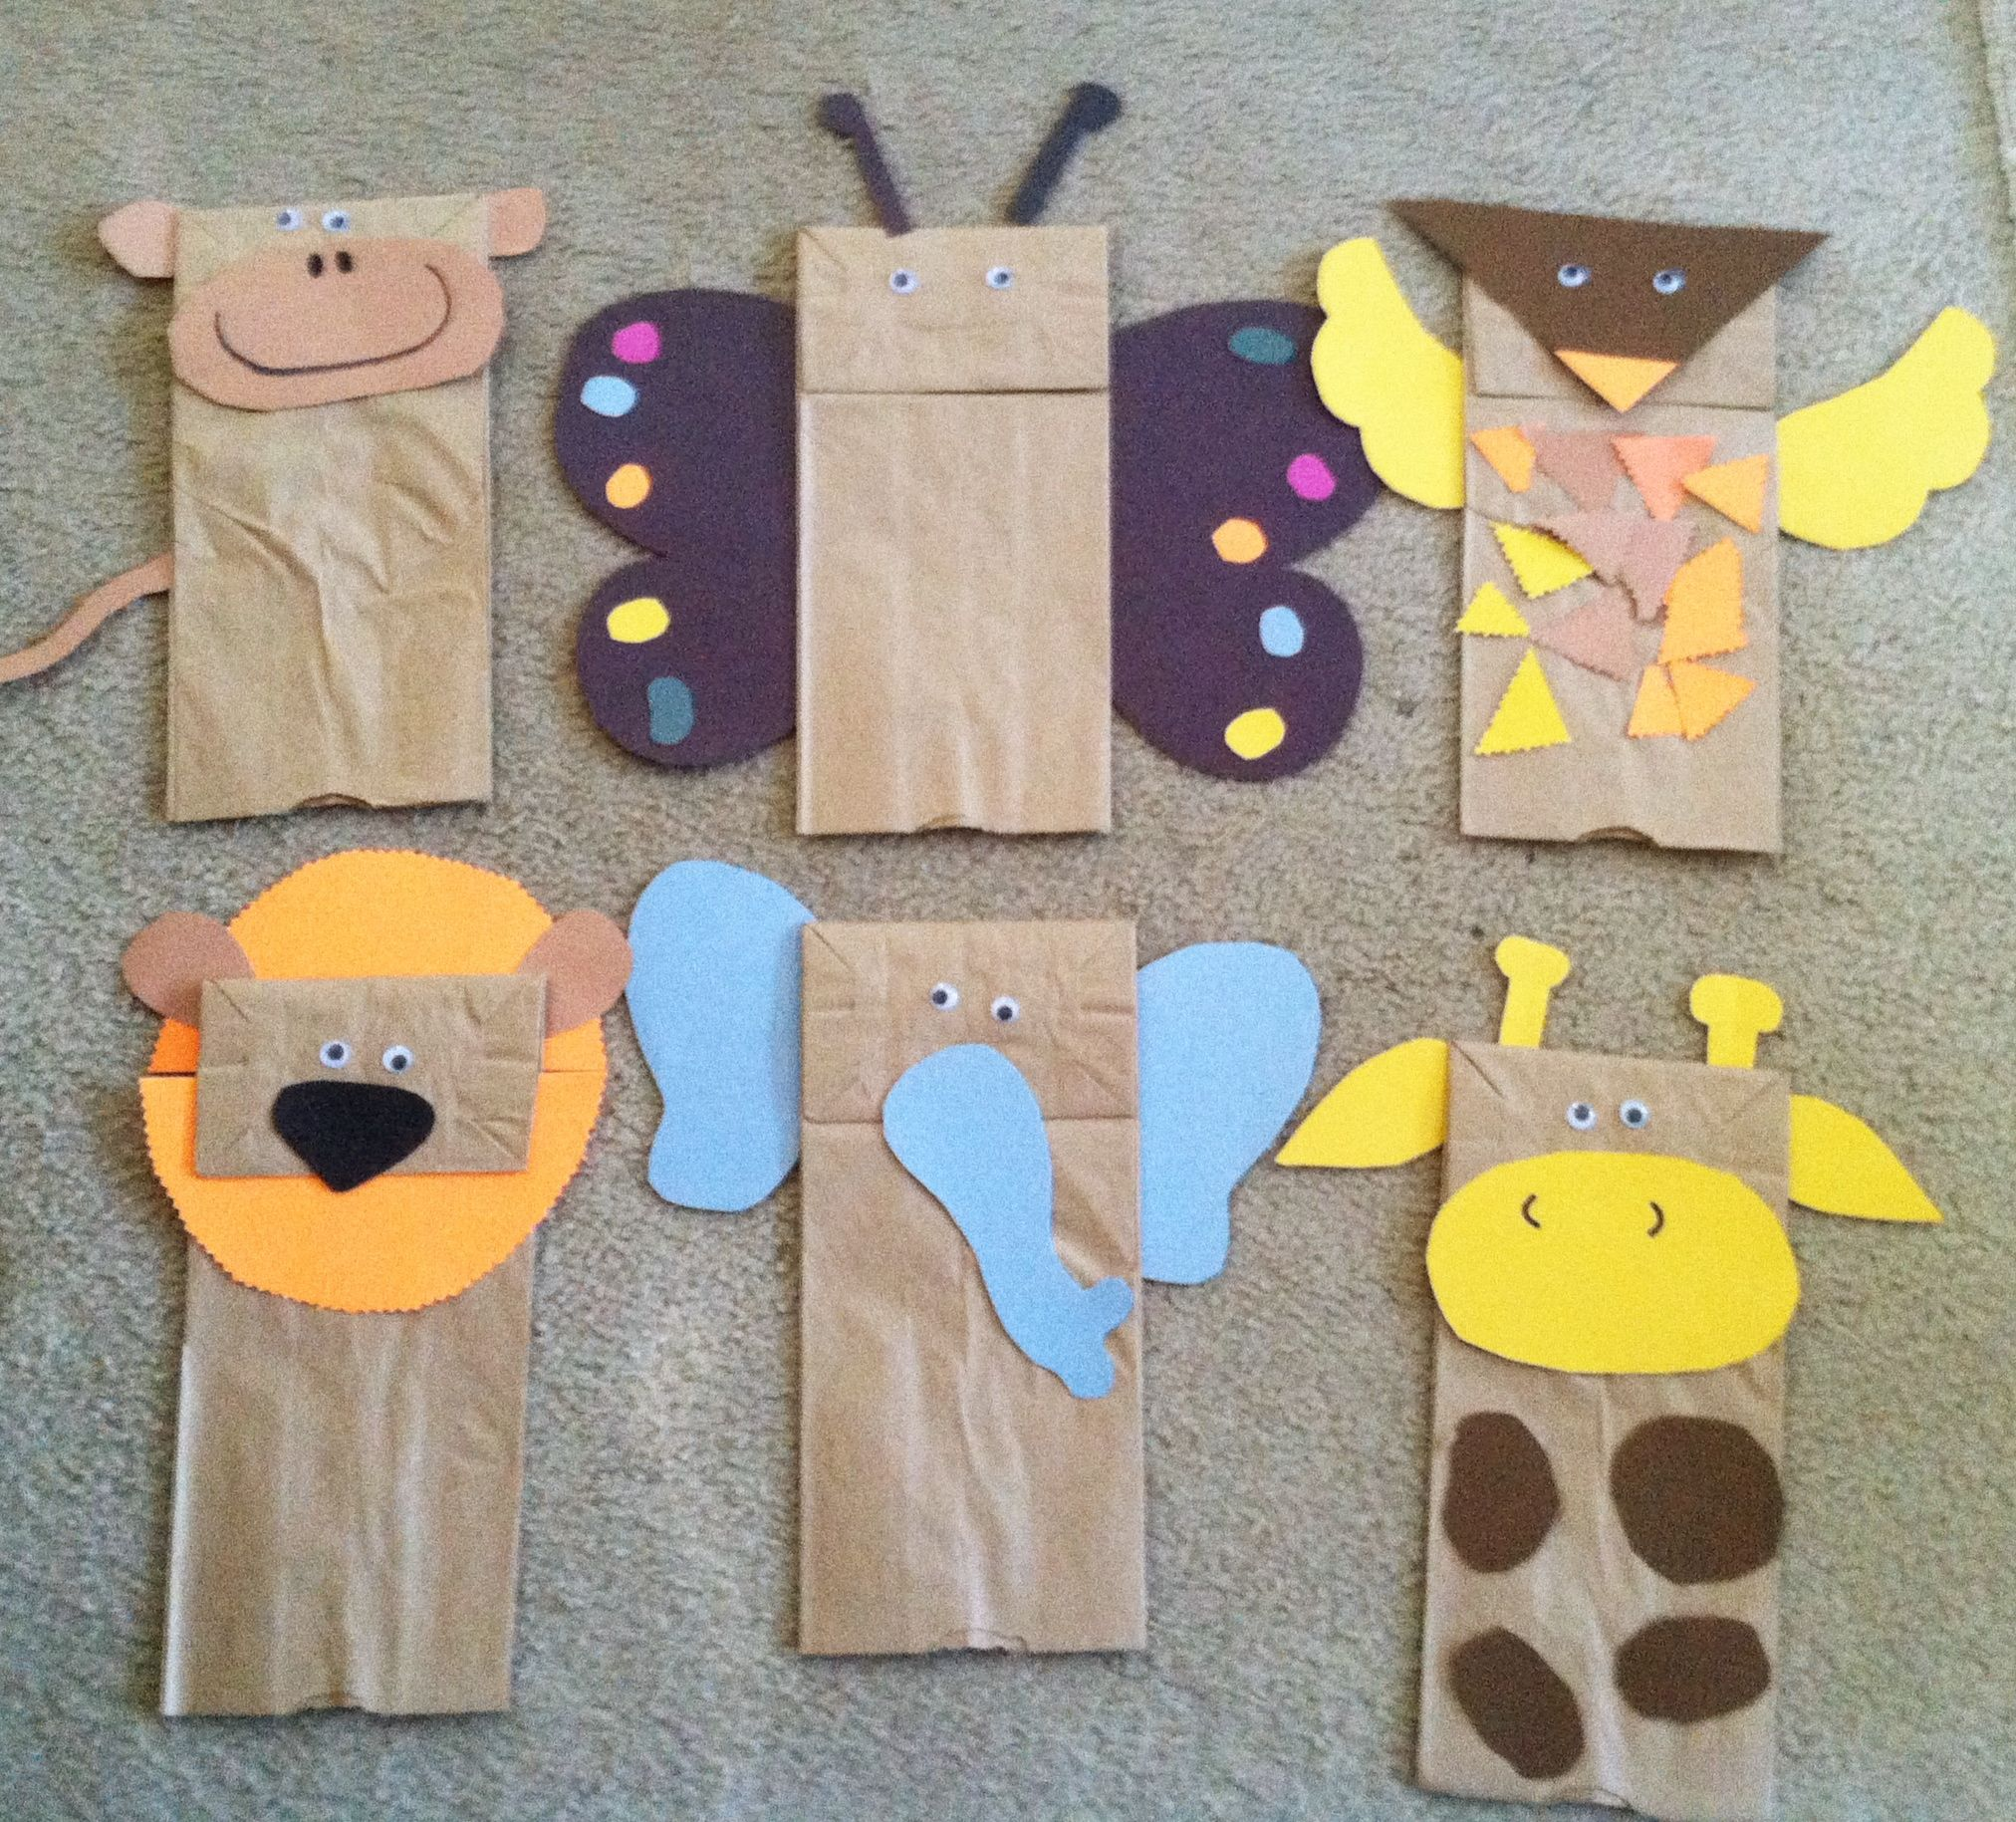 Images About Papierowe Torby  Paper Bag On Pinterest Kids fdfefbdee Papierowe Torby Paper Bag